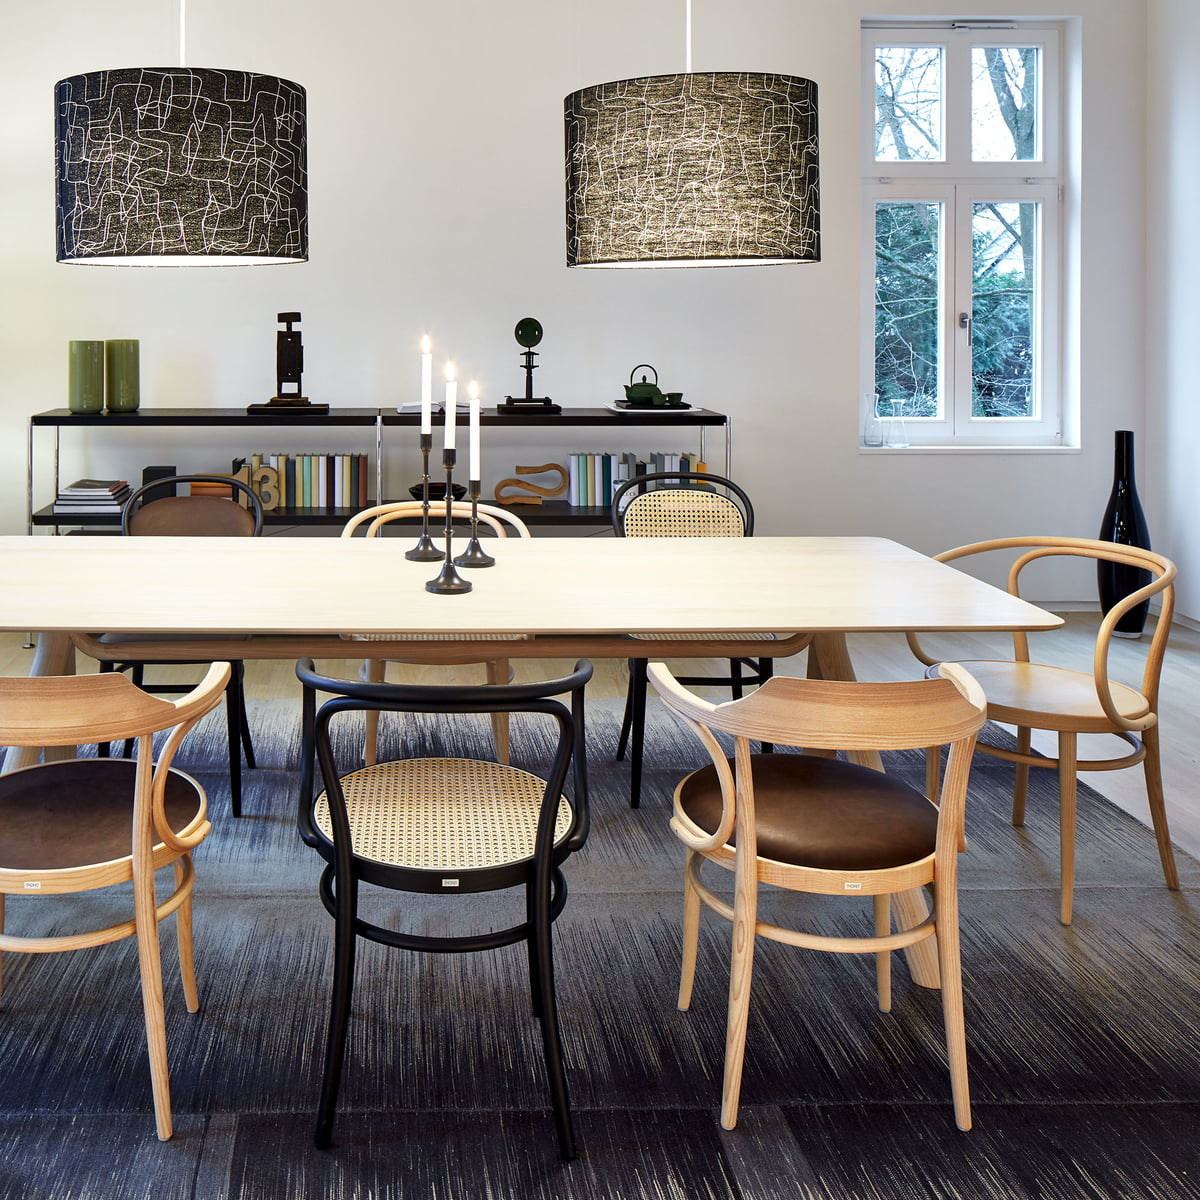 Classic Bentwood Chairs by Thonet & S 209 Chair with Armrests by Thonet   Connox